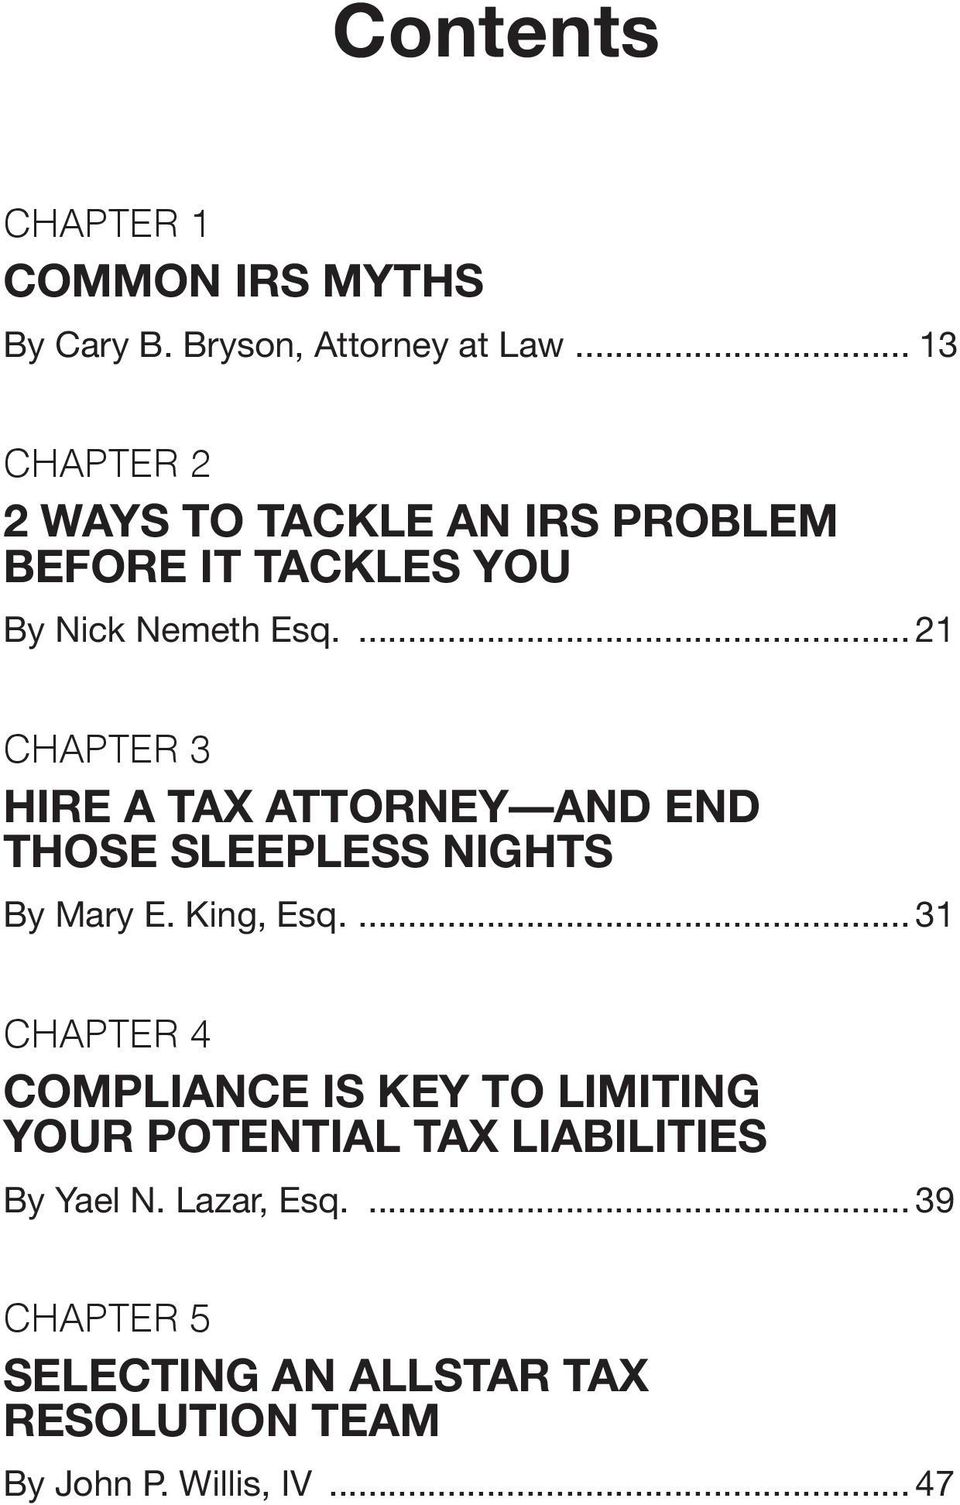 ... 21 Chapter 3 hire a tax attorney and end those SleePleSS nights By Mary E. King, Esq.